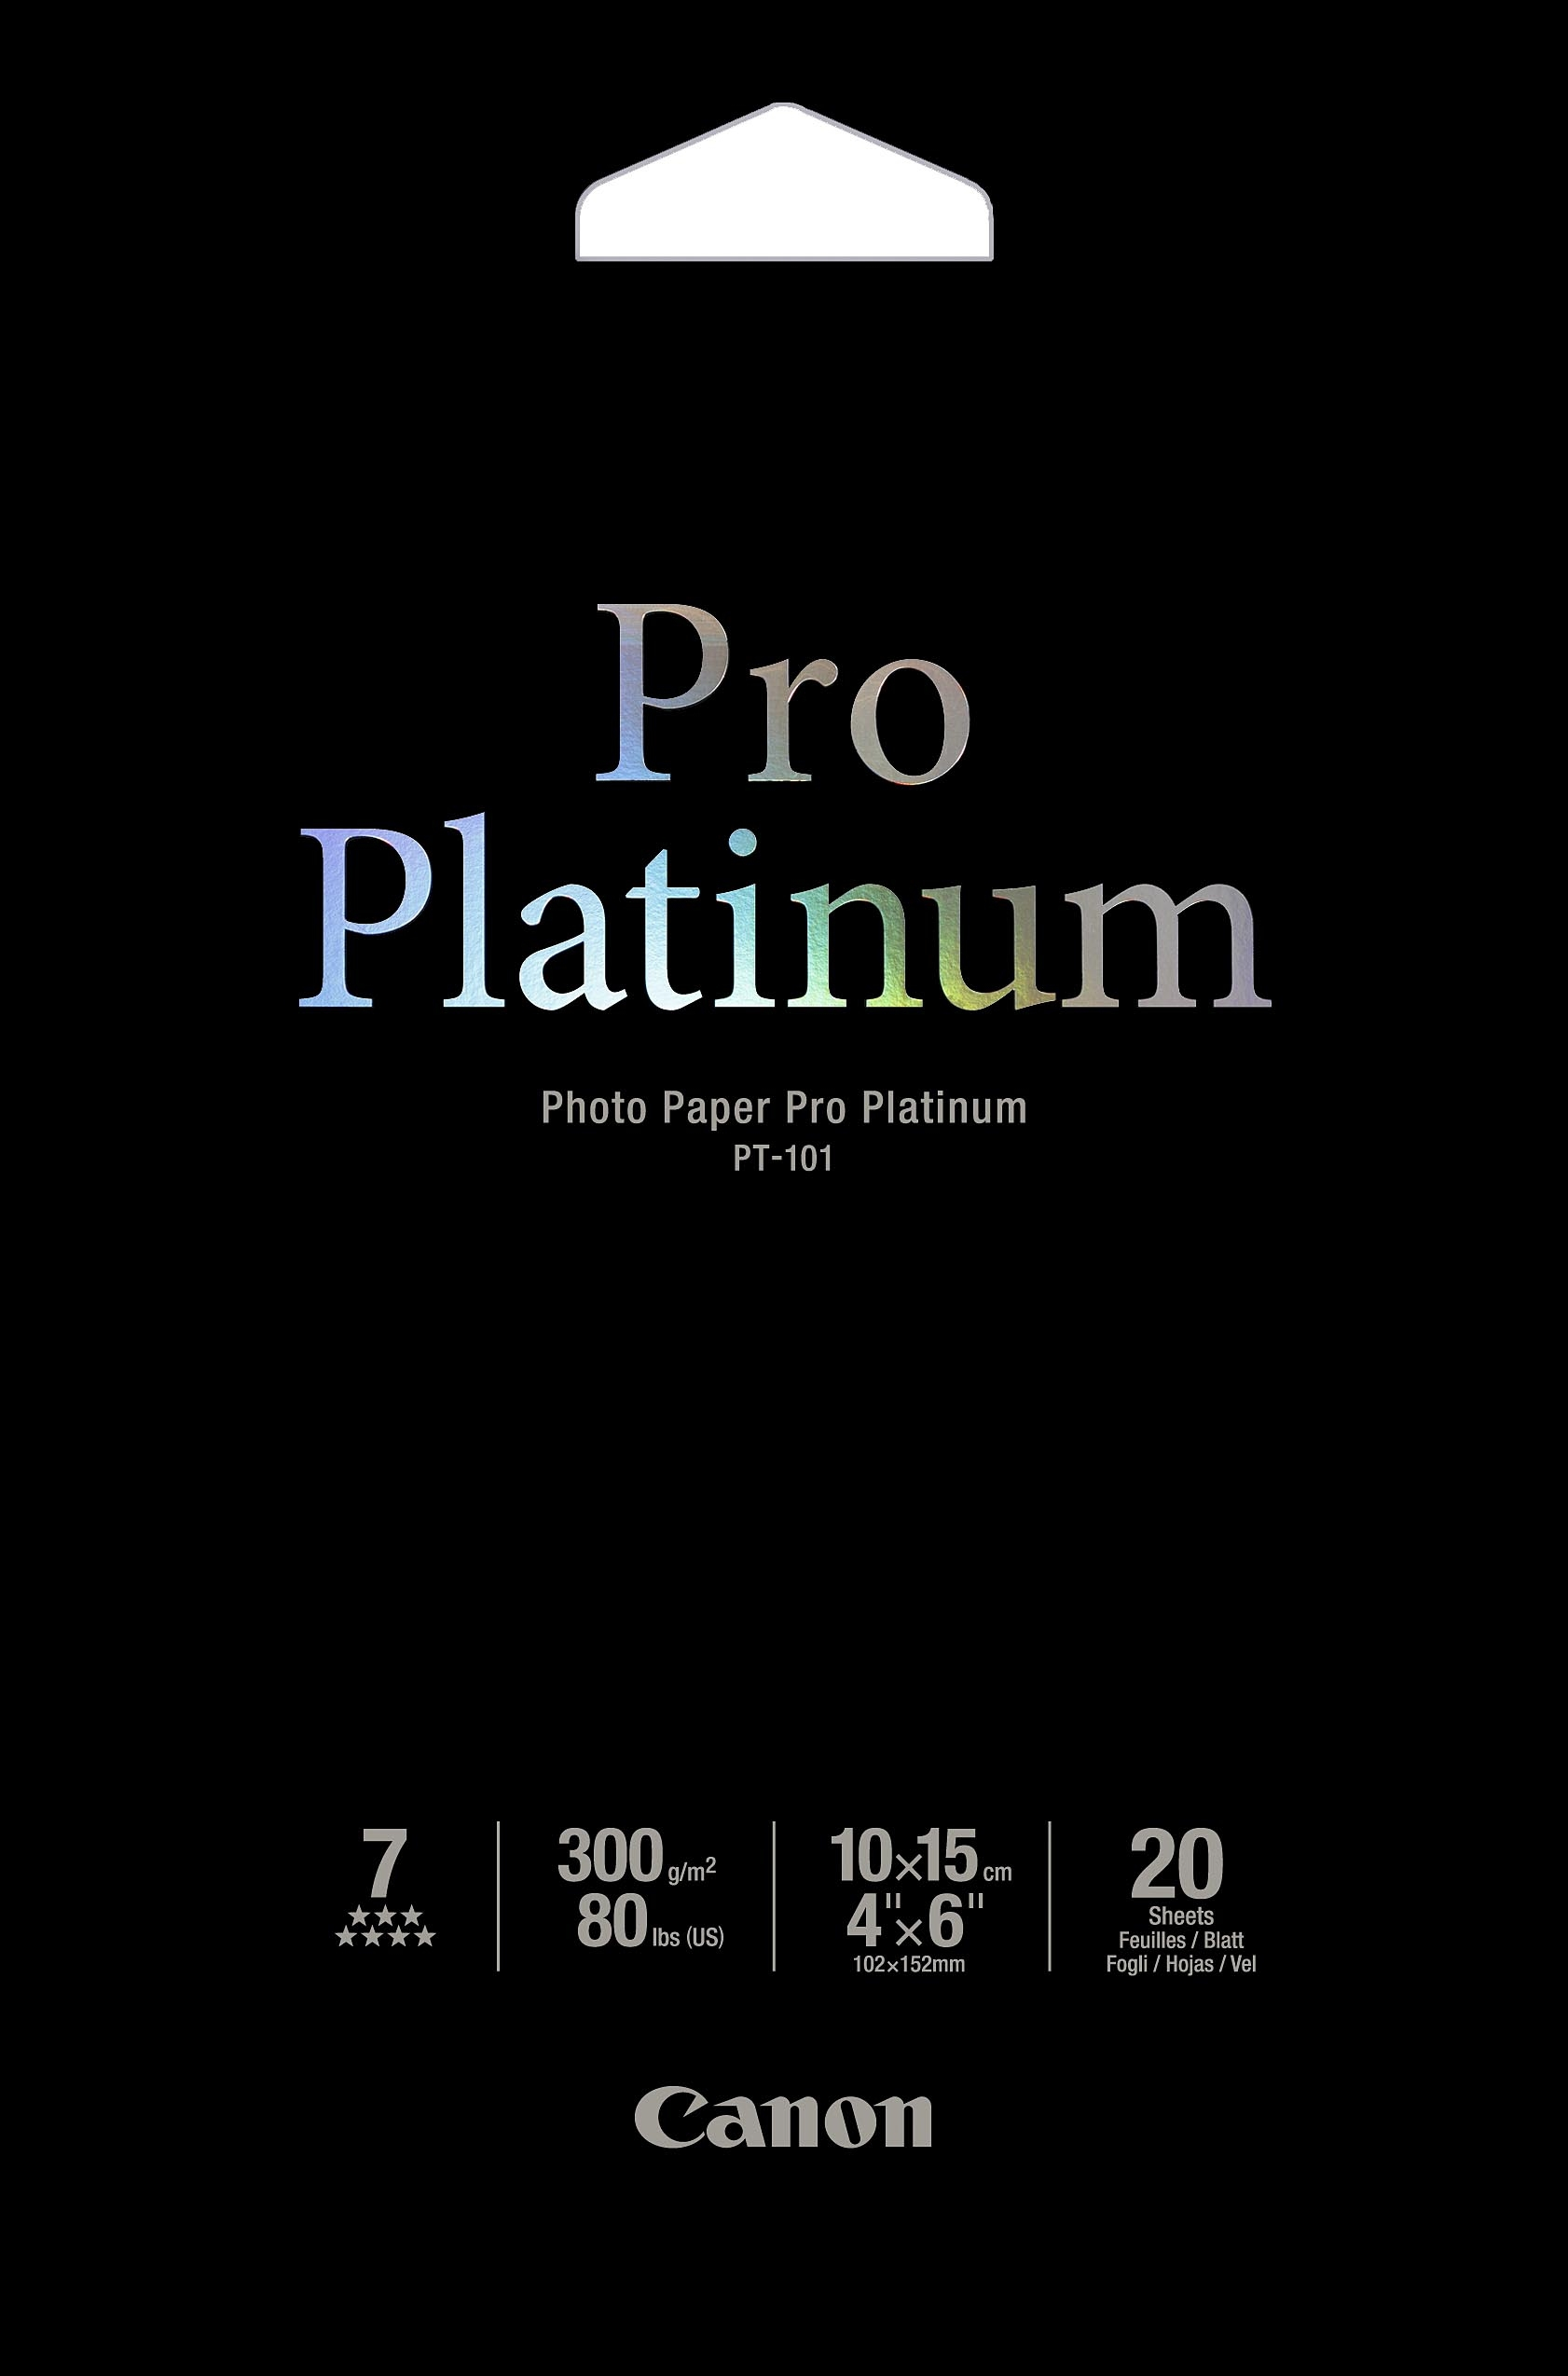 Canon PT-101 - Pro Platinum Photo 10x15cm, 20 sheets